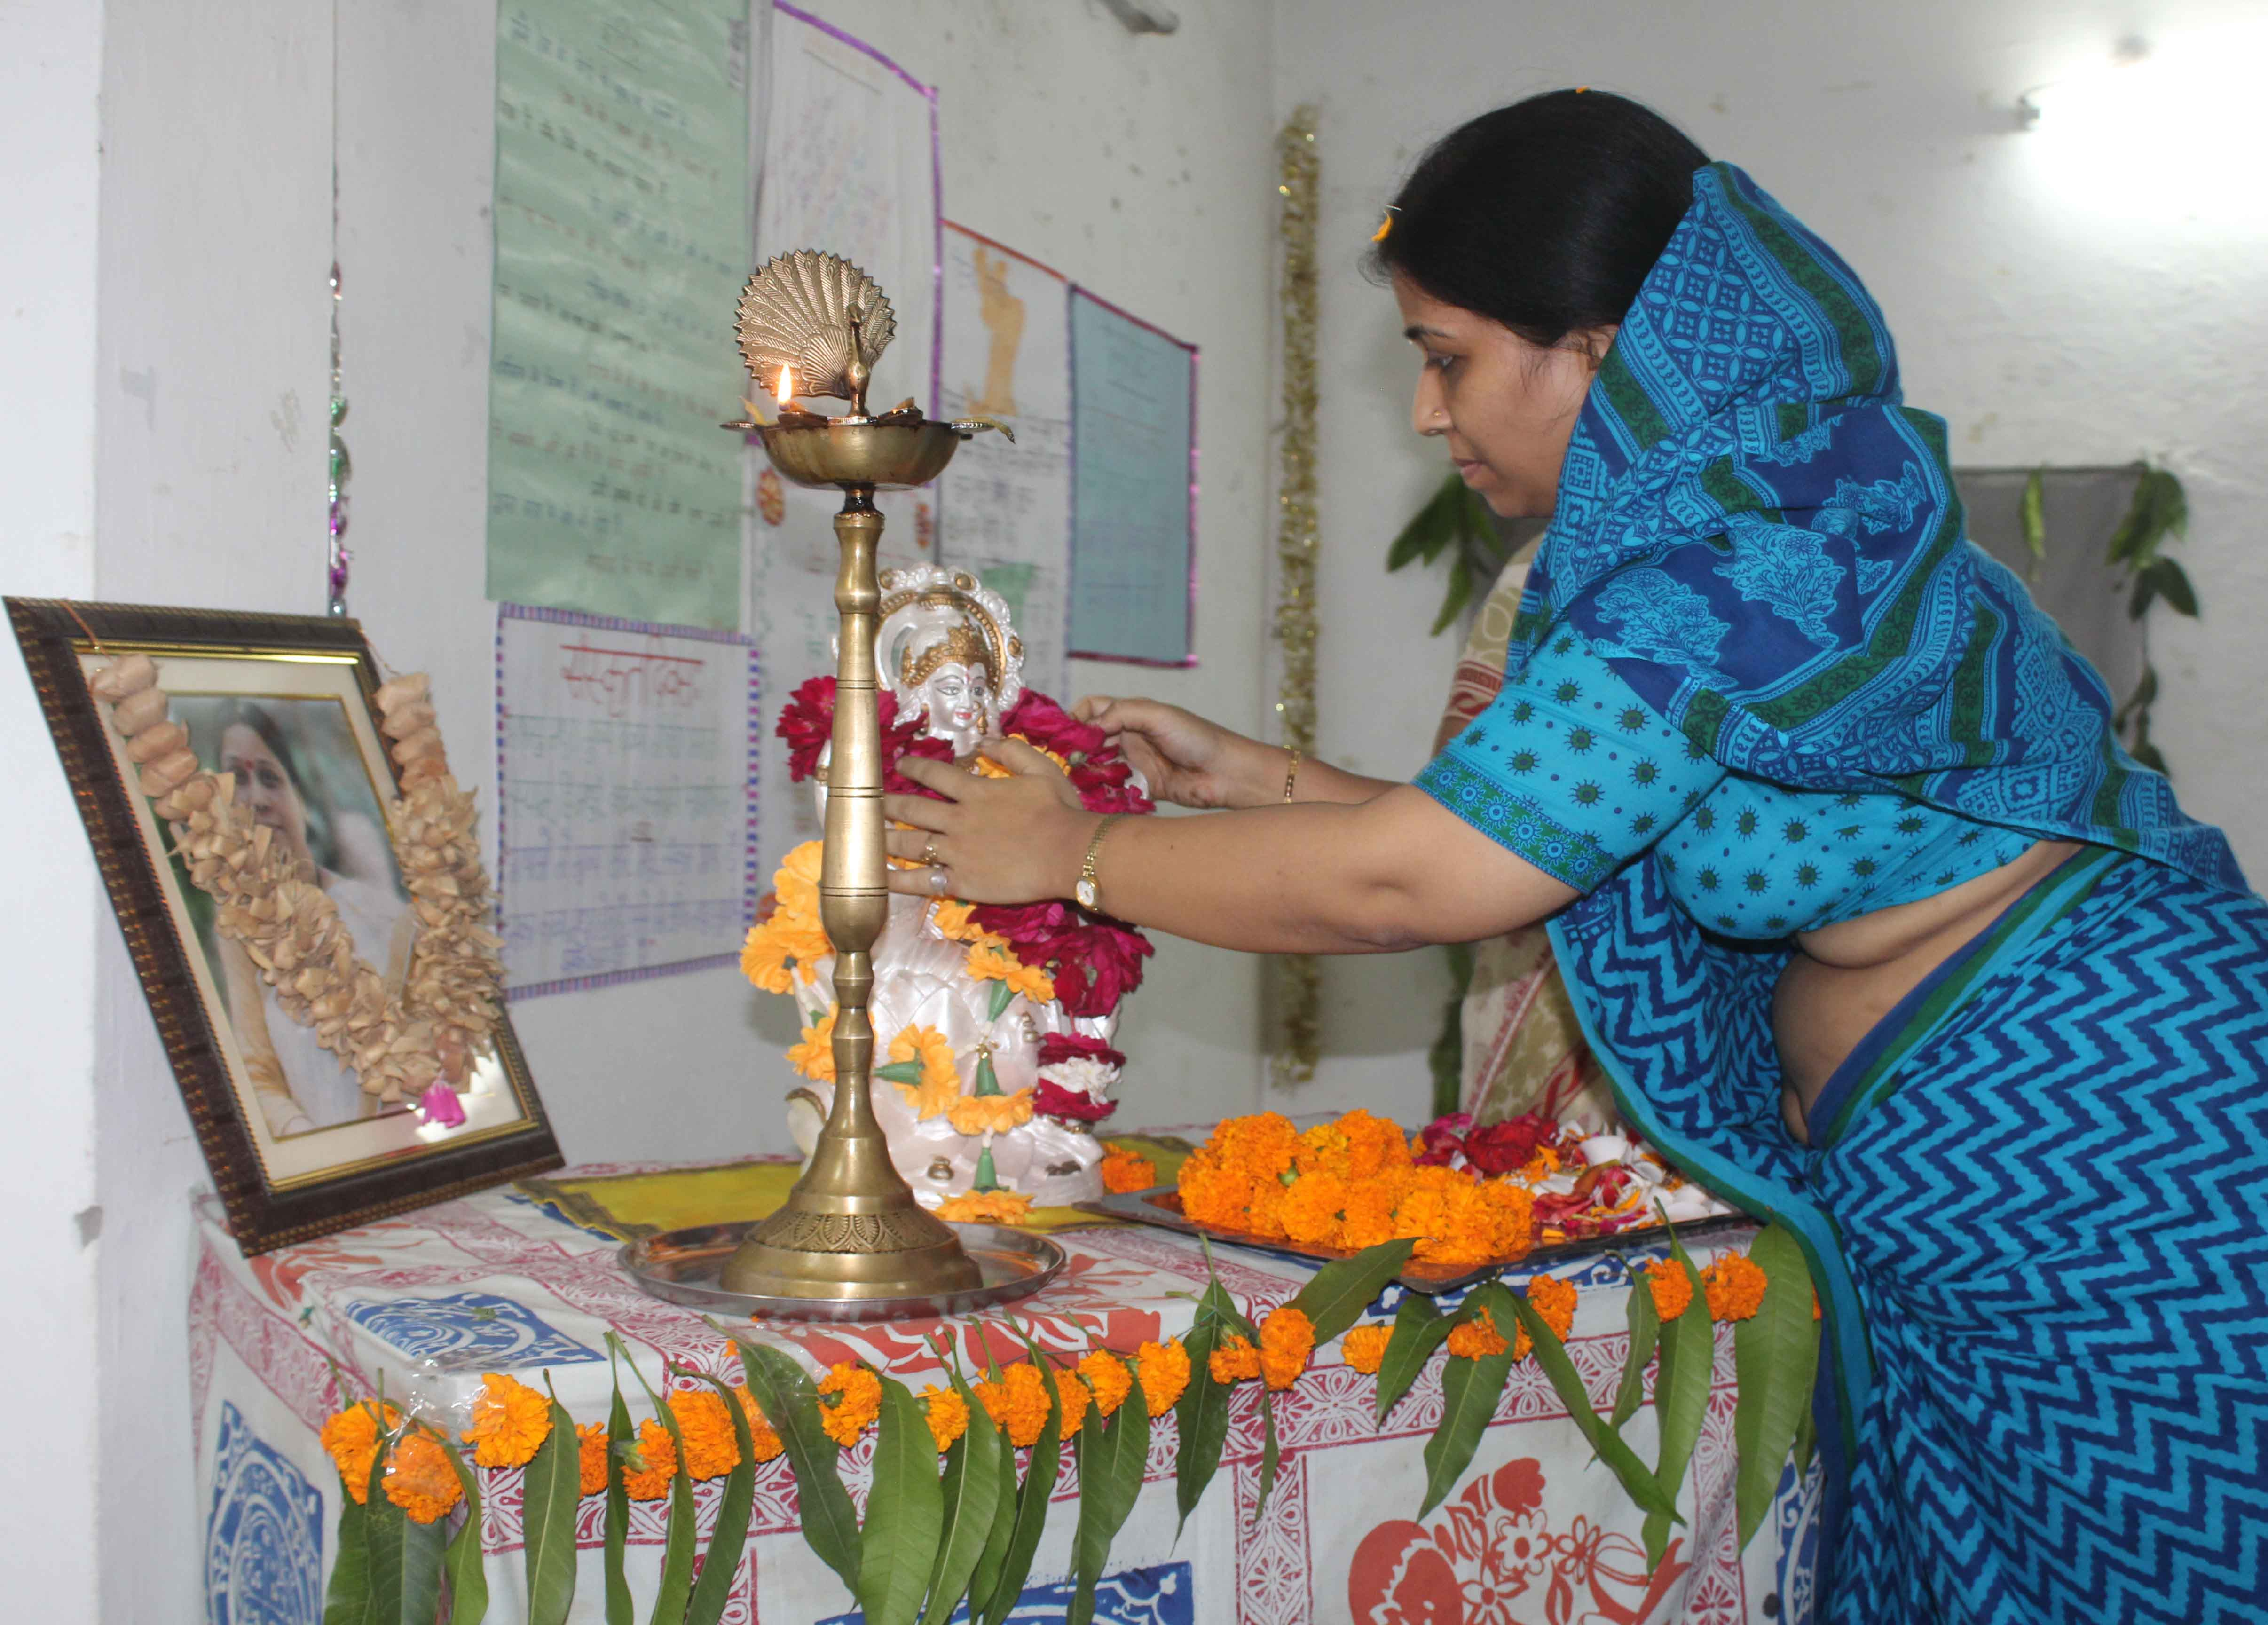 Hindi Diwas Program Organized in Sri Guru Nanak Girls Degree College